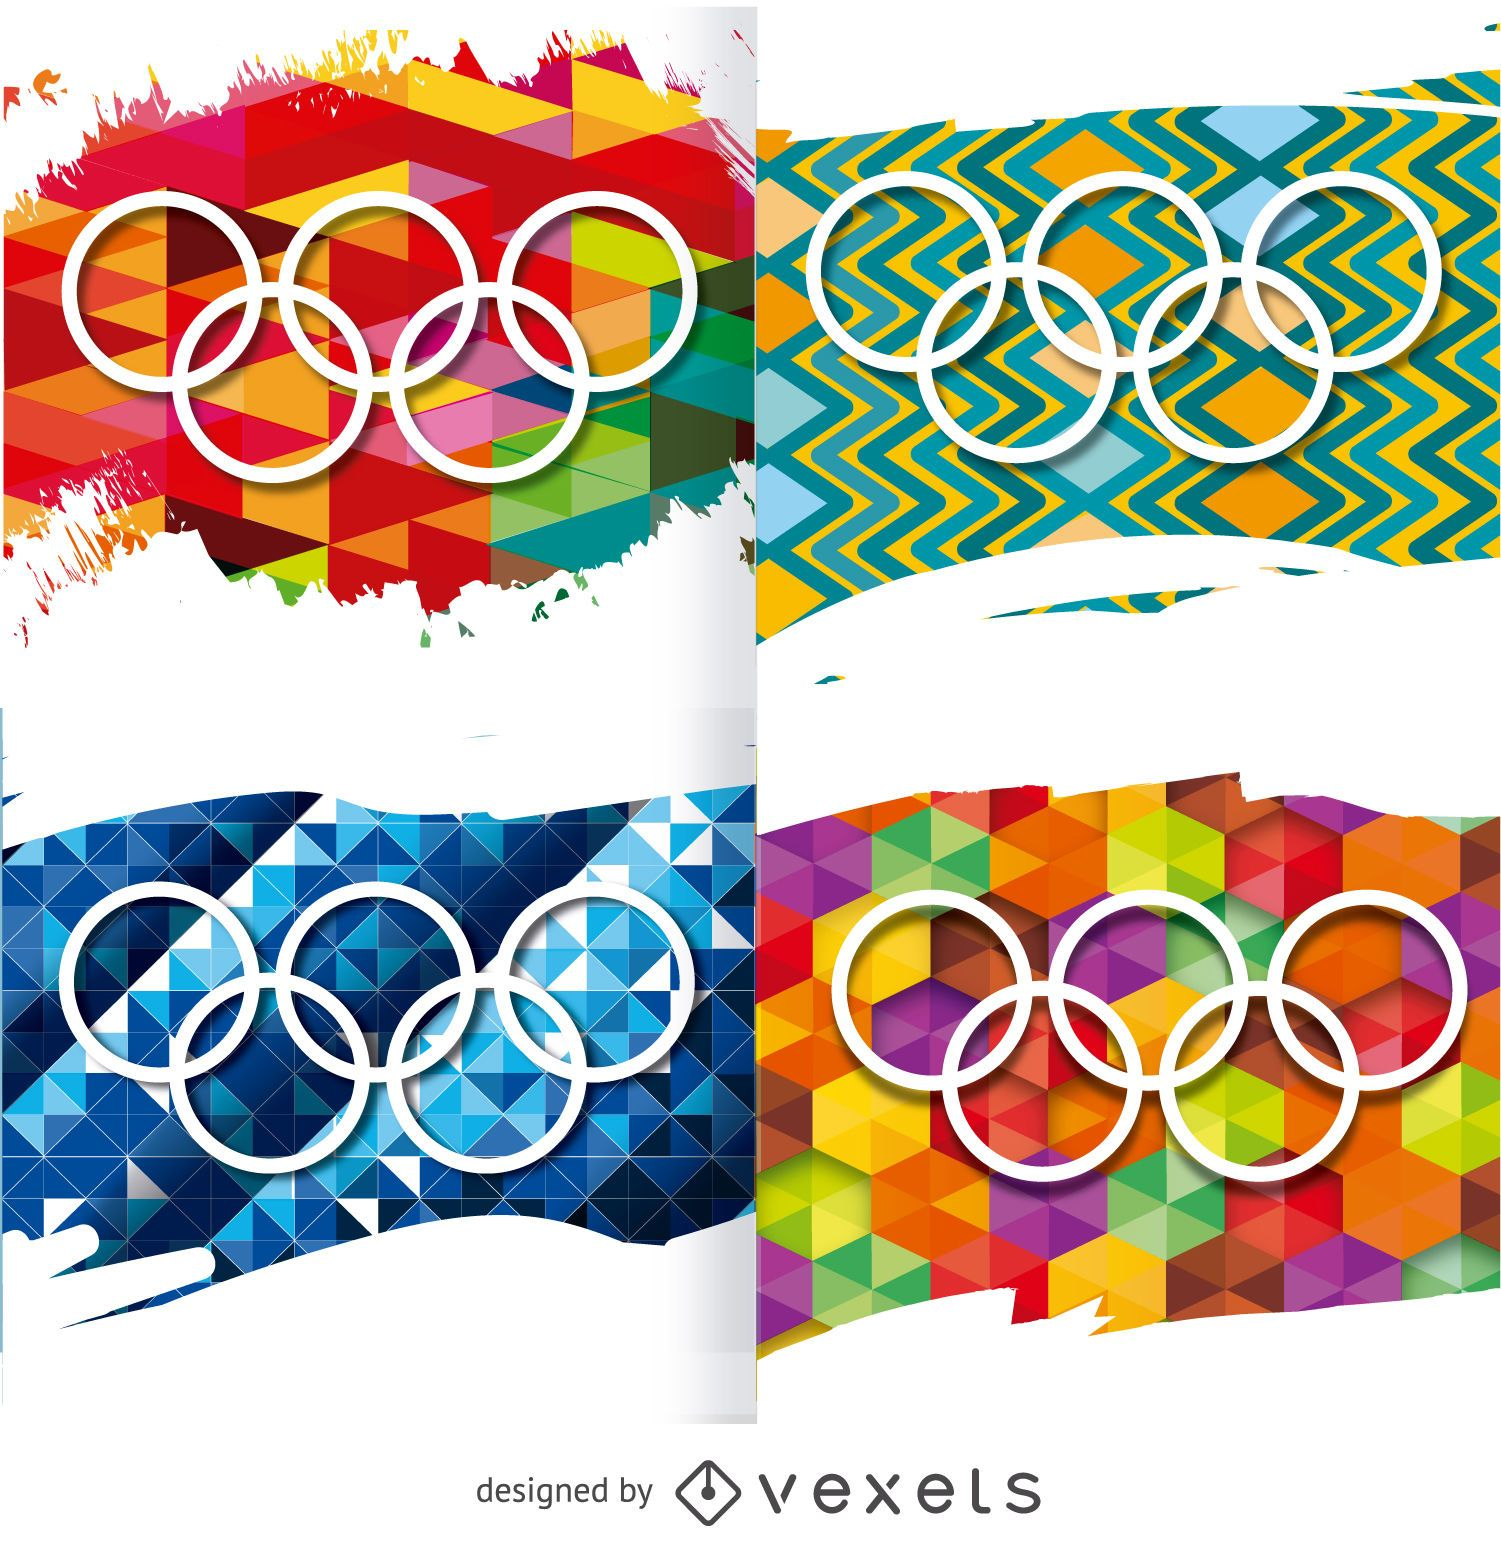 Rio 2016 - Olympic rings on backgrounds